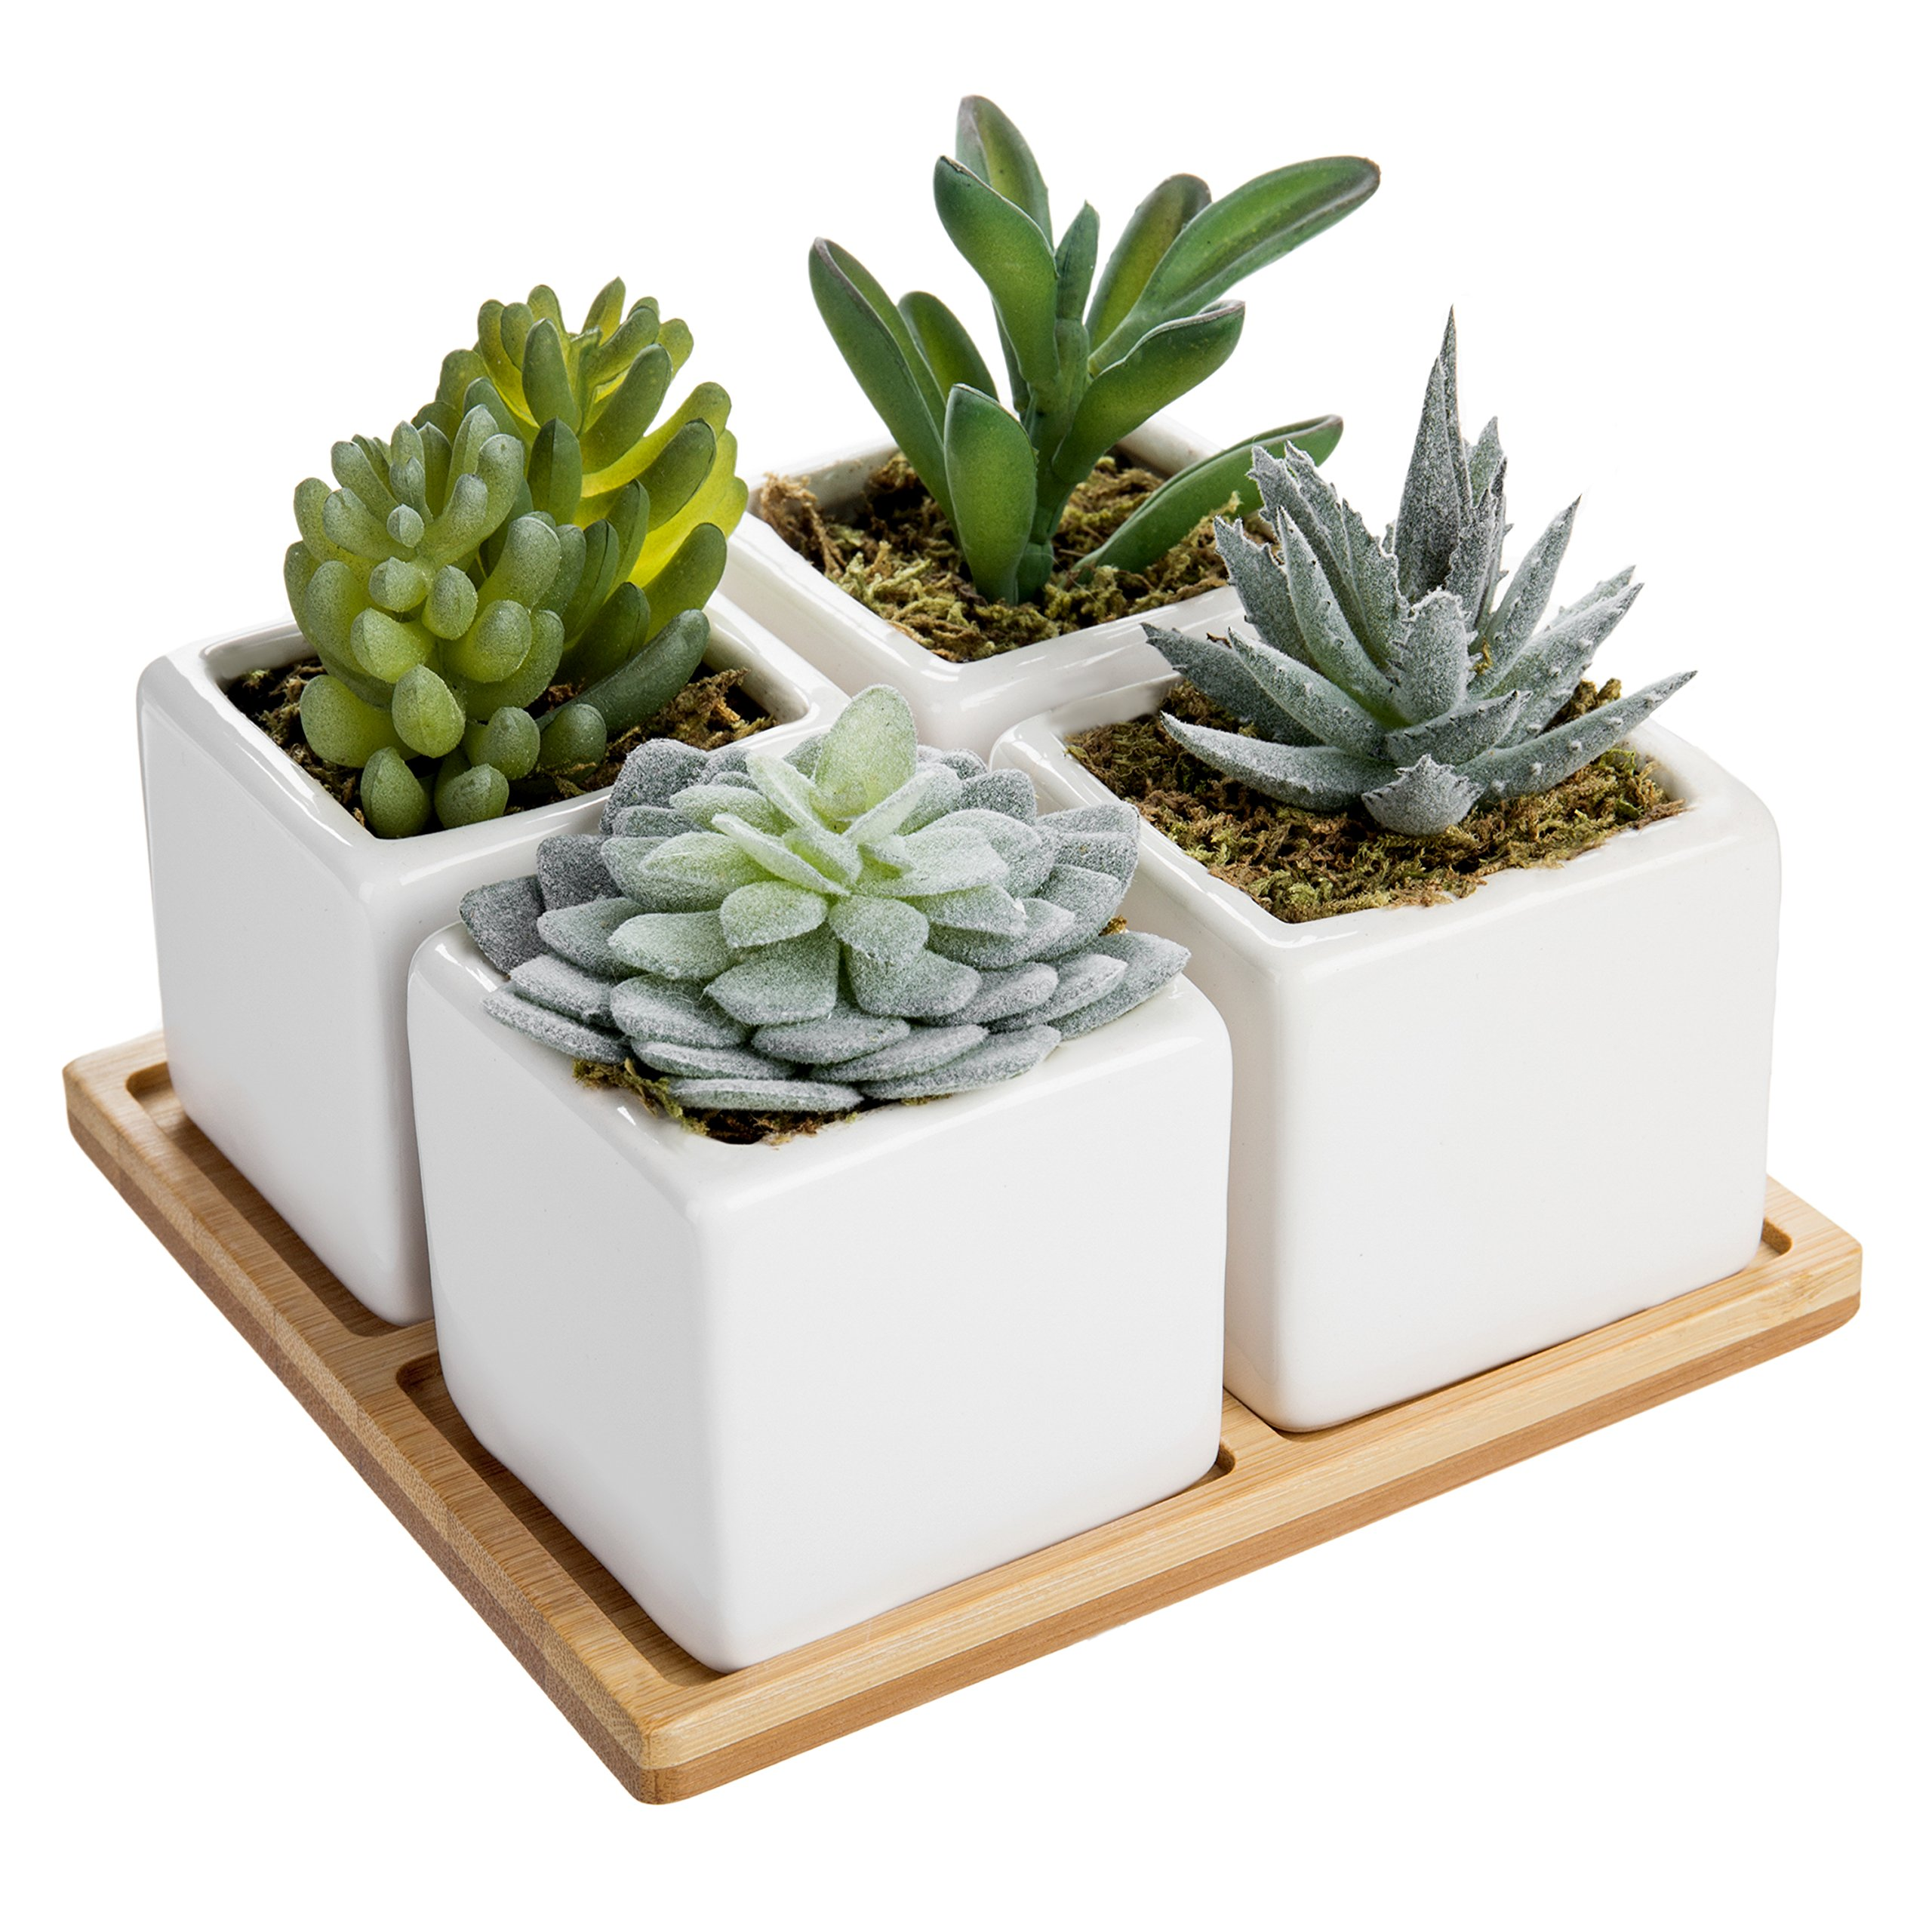 MyGift Set of 4 Mini Artificial Succulent Plants with Bamboo Display Tray